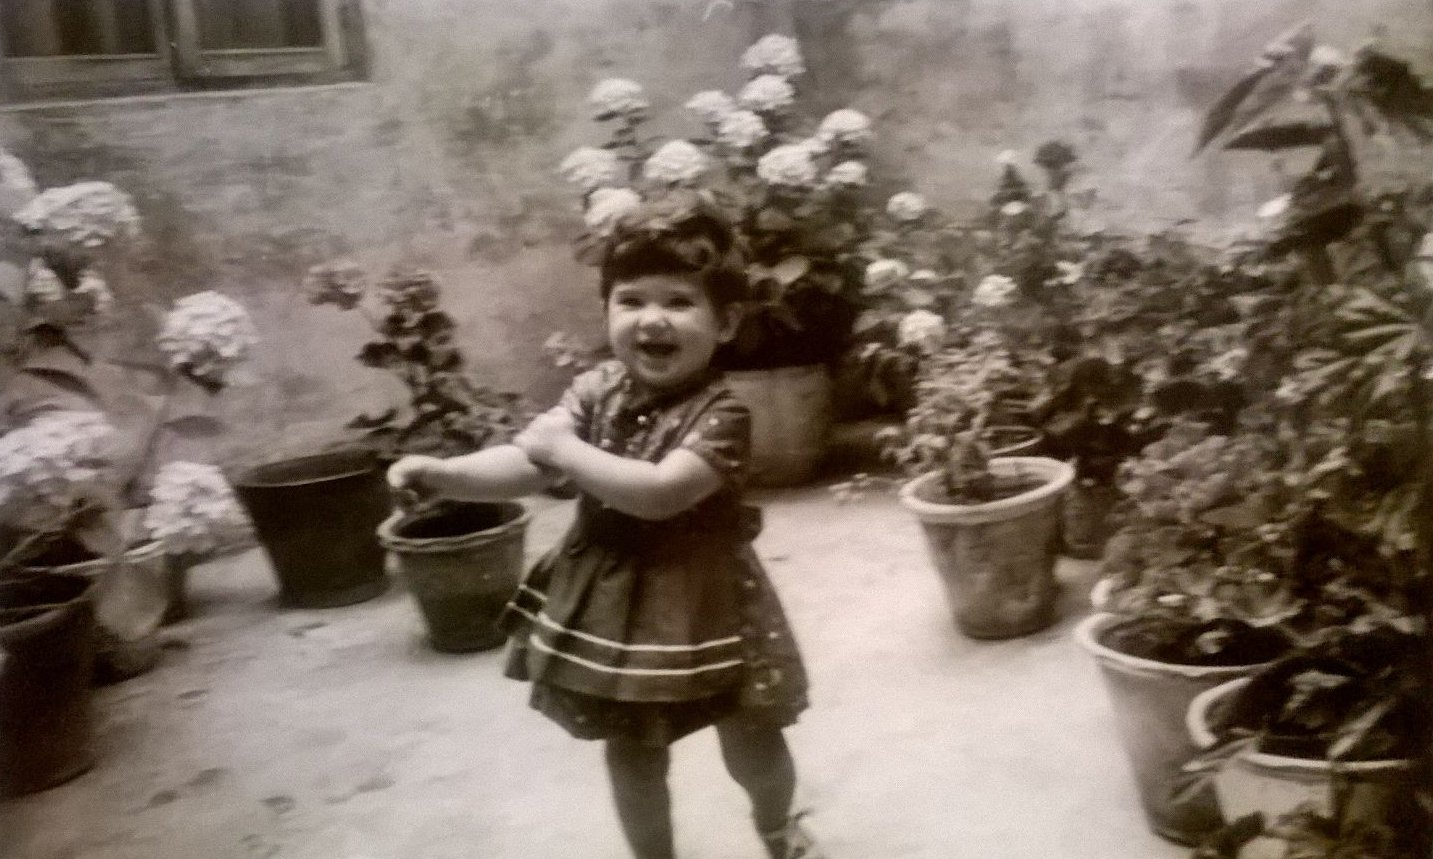 Patio with plants and child